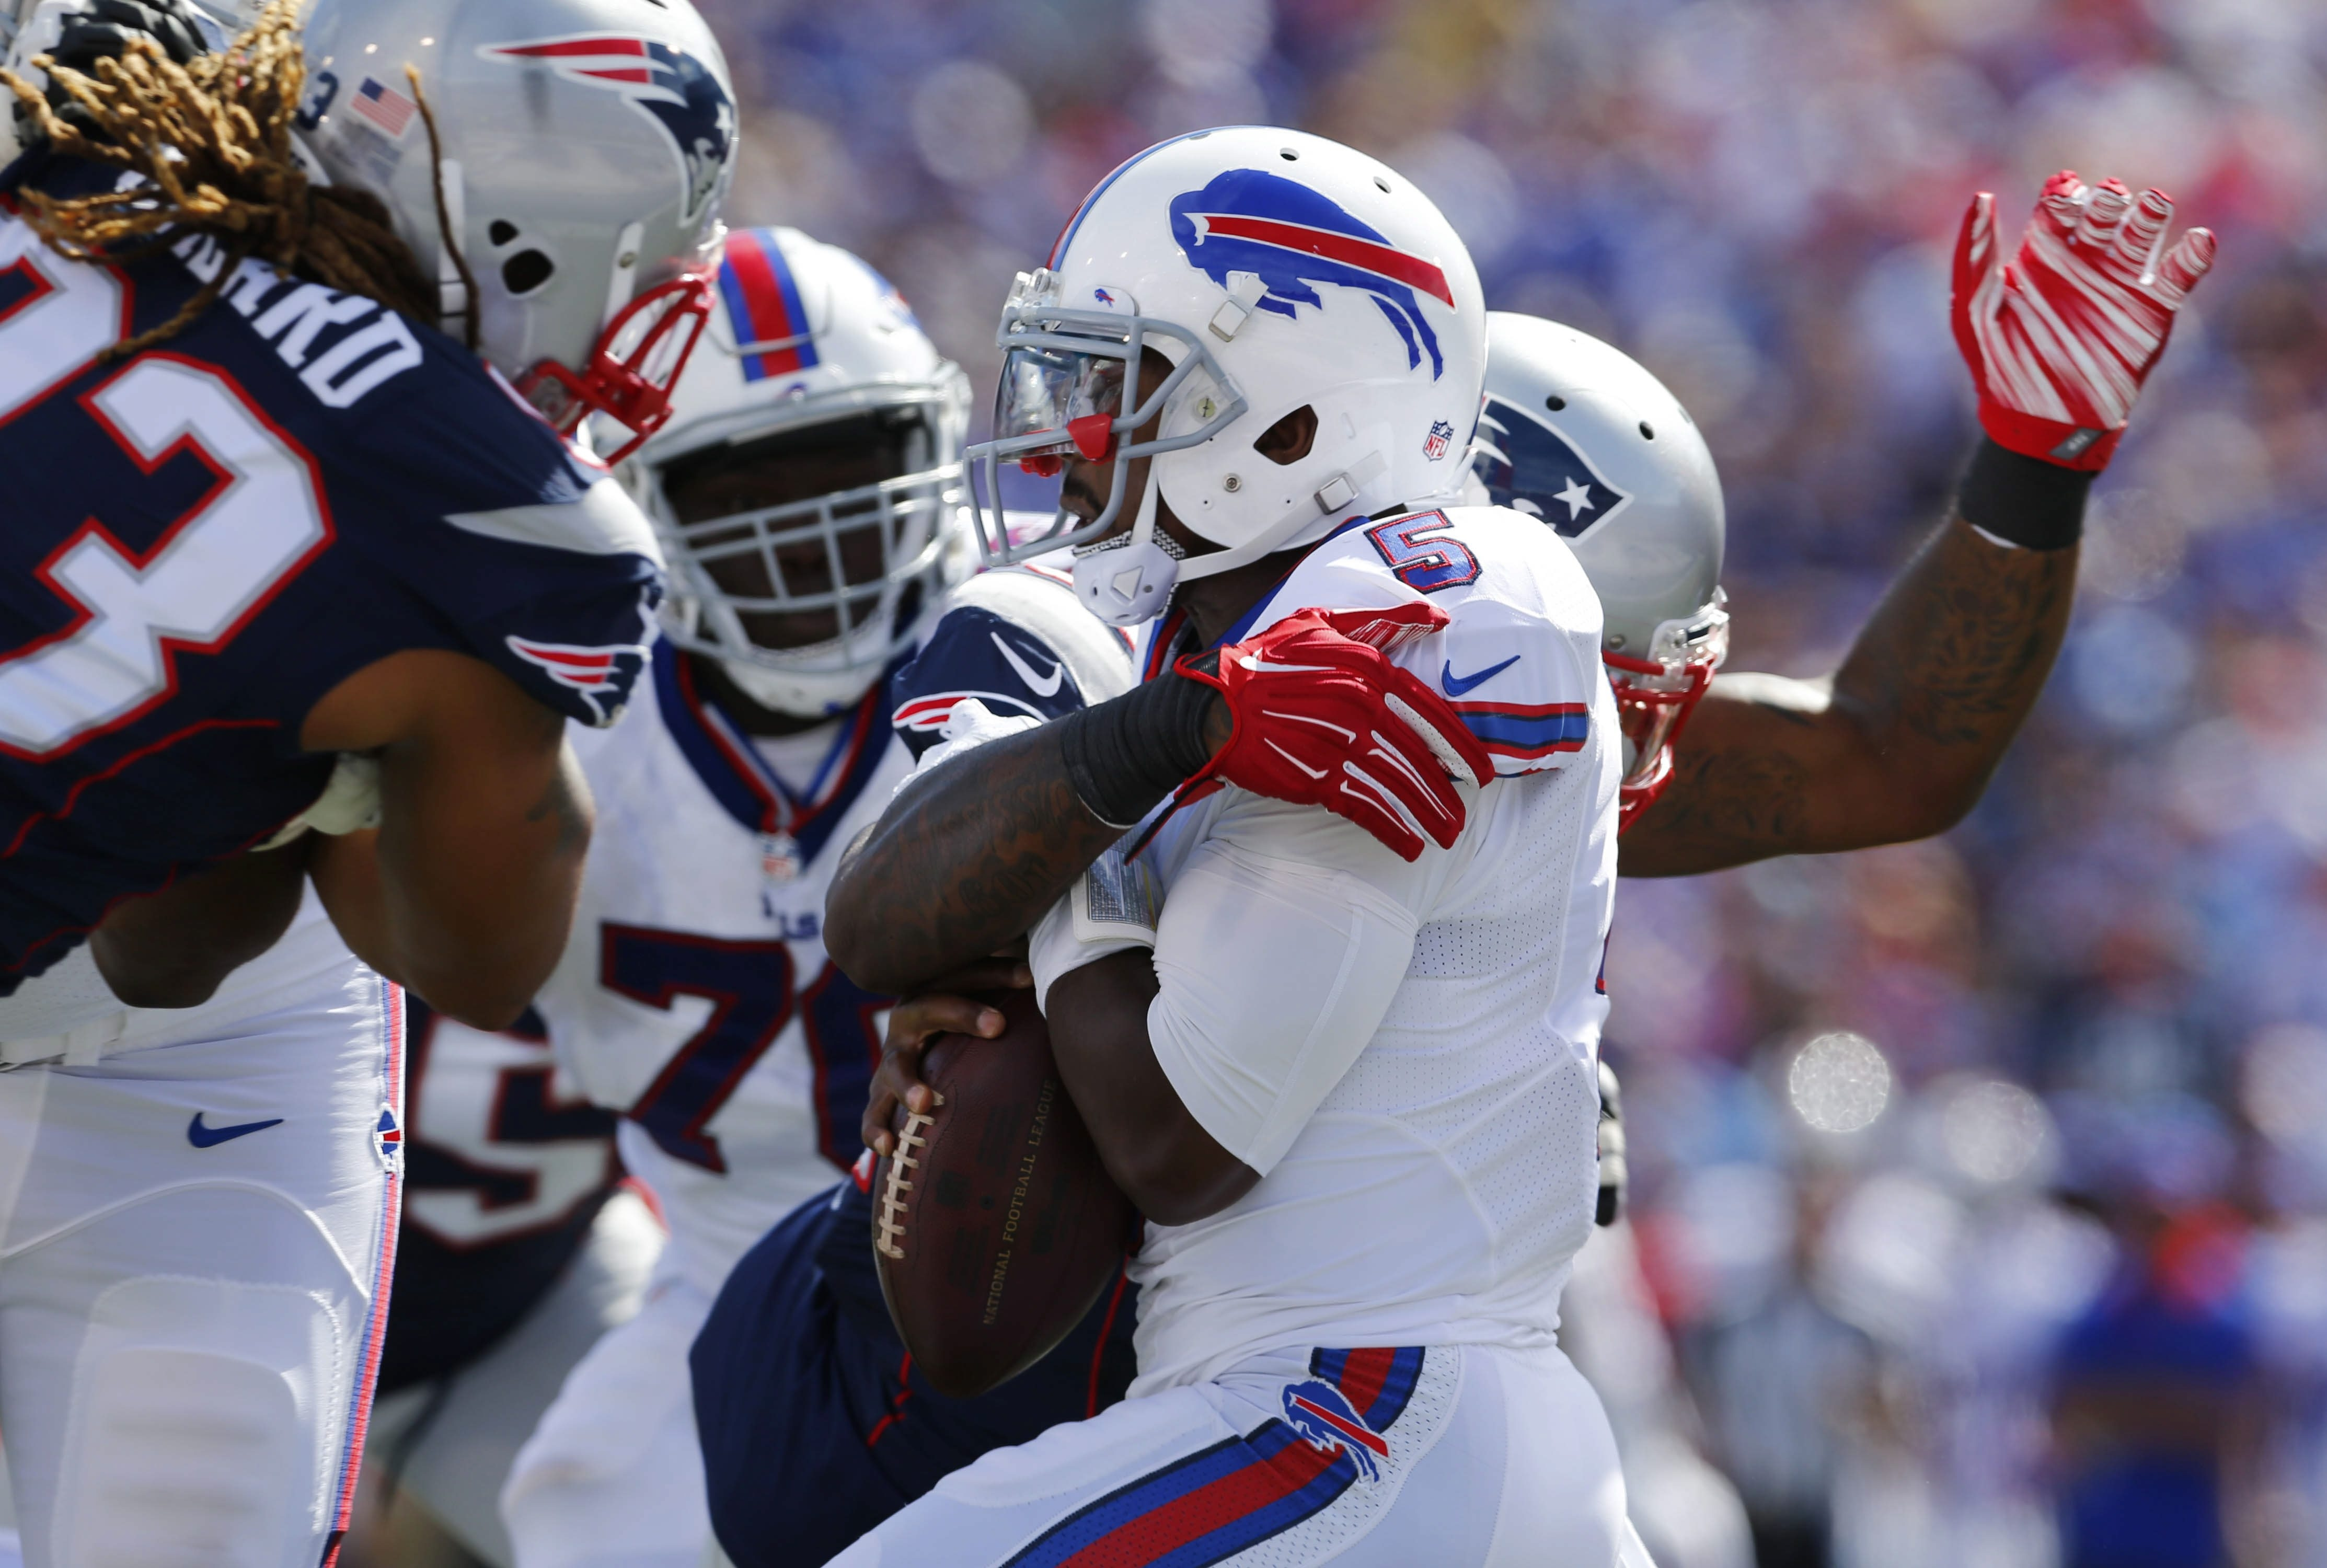 Bills quarterback Tyrod Taylor is wrapped up by Patriots linebacker Jamie Collins for a sack in the first quarter.